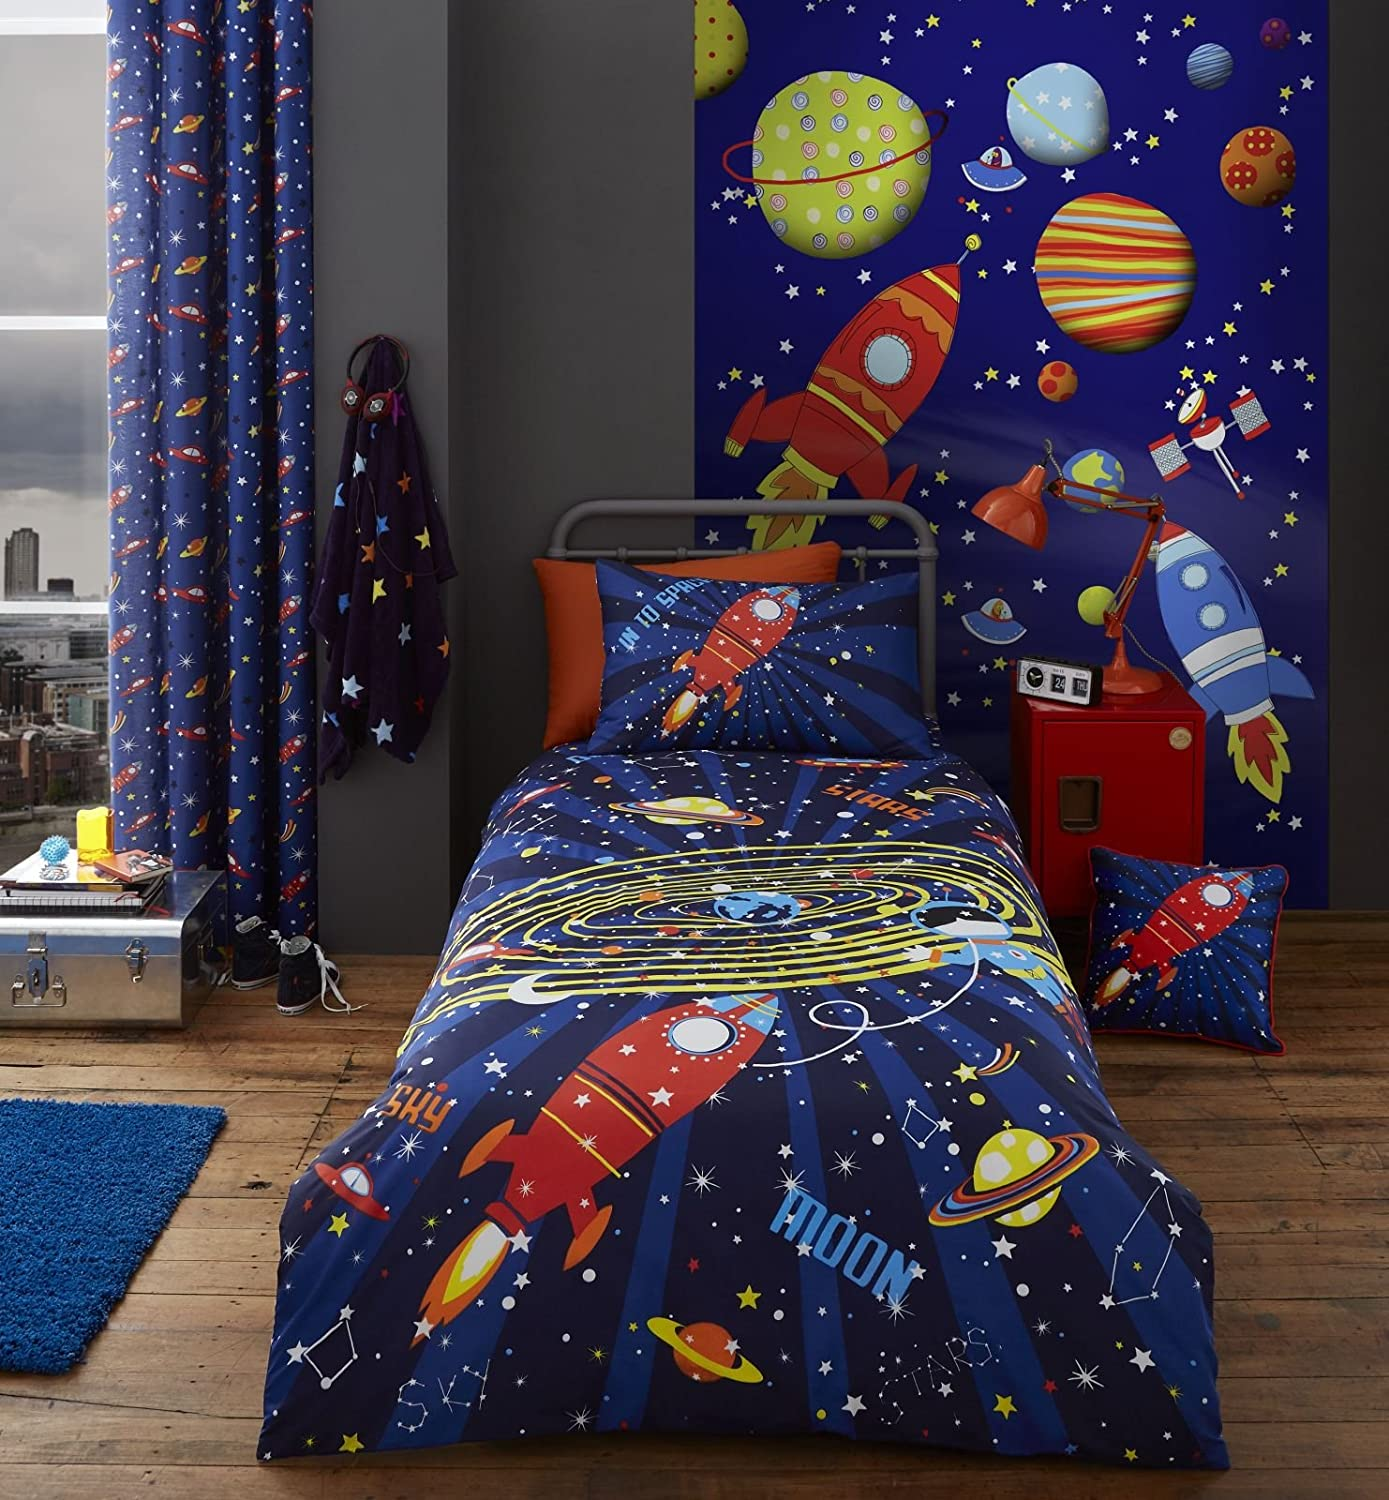 Catherine Lansfield Outer Space Eyelet Curtains, Blue, 66 x 72-Inch 66 x 72-Inch Turner Bianca BD/45292/W/E6672/BL